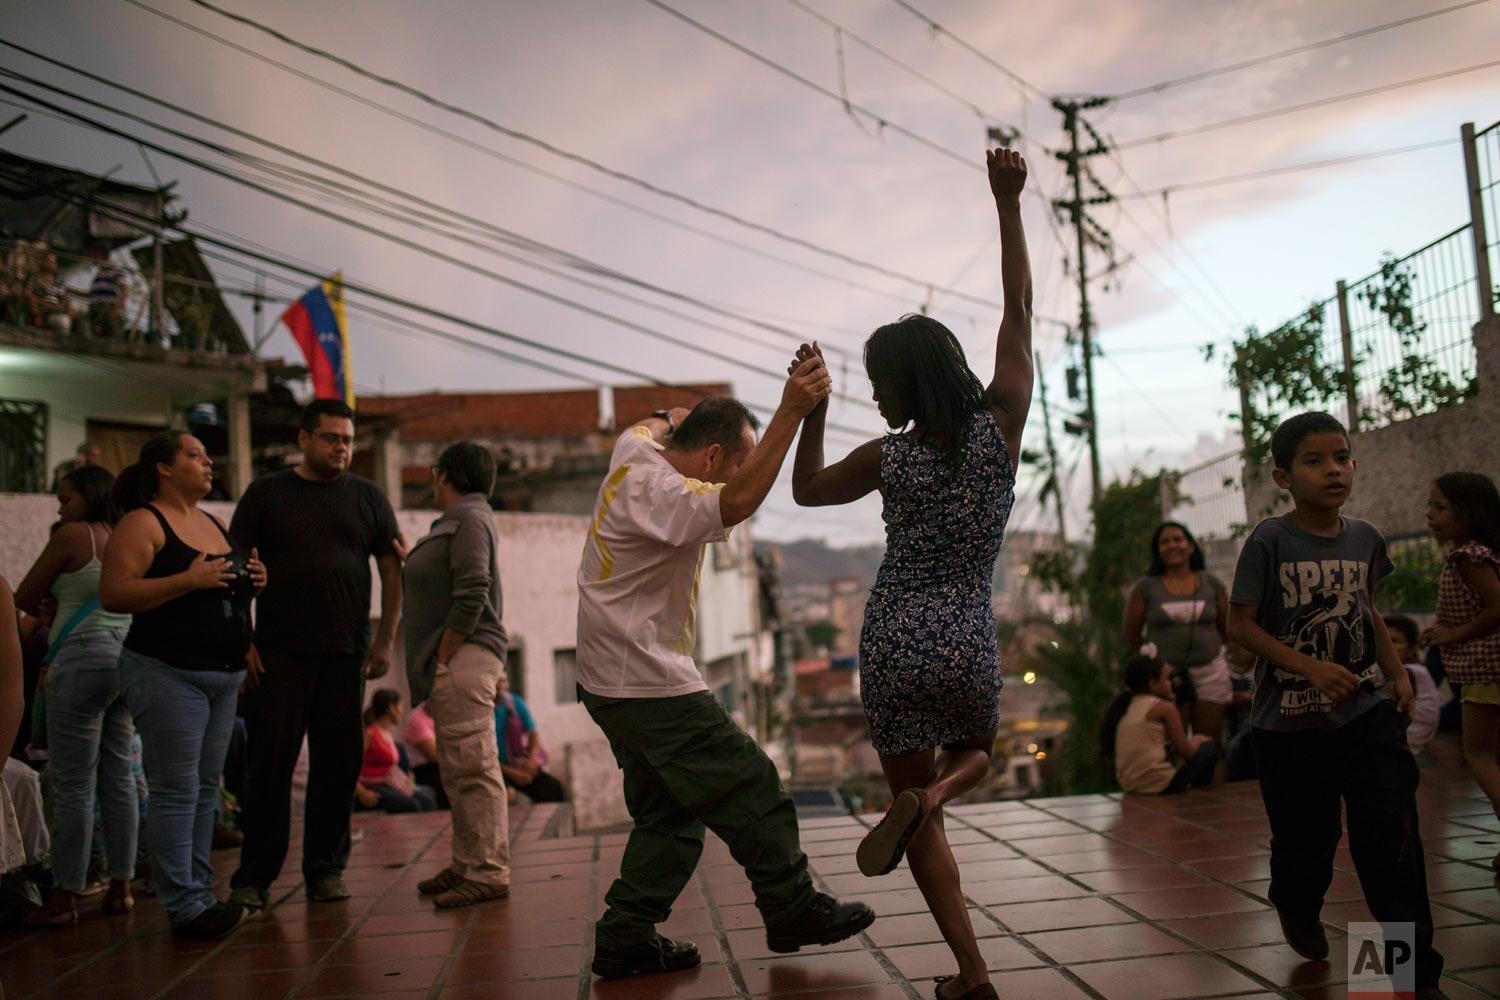 Irene Vaamondez, right, dances with a neighbor as musicians play live music at a public plaza where neighbors socialize in Caracas, Venezuela, at sunset Saturday, May 11, 2019. (AP Photo/Rodrigo Abd)